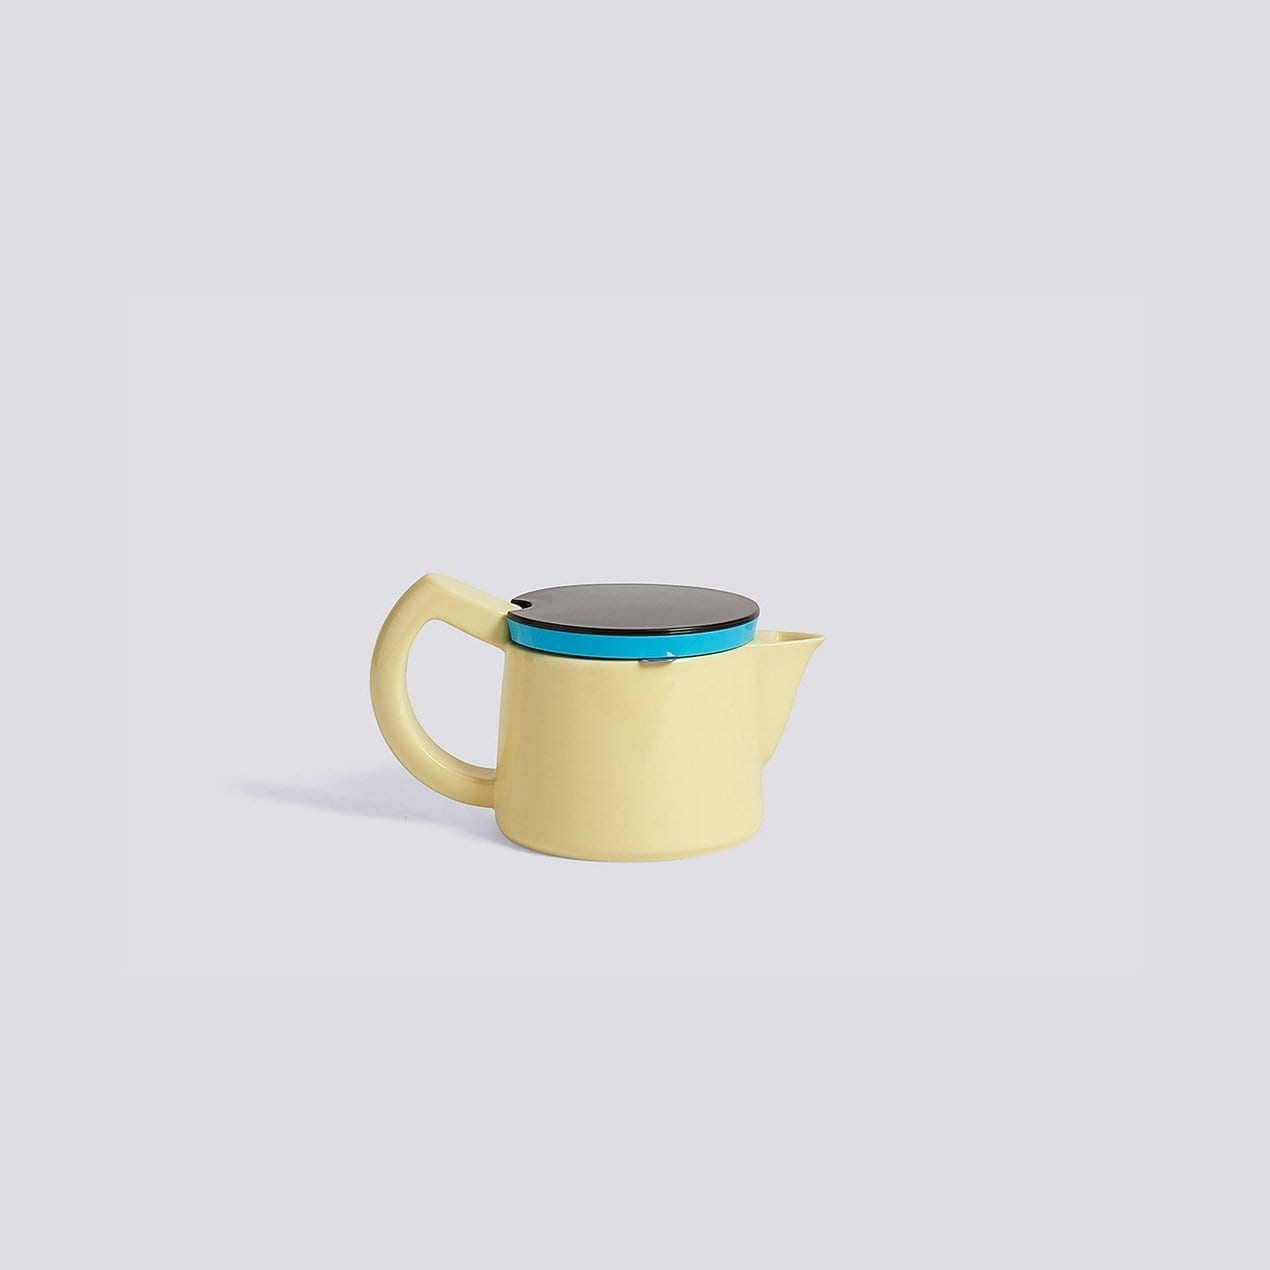 Small Sowden Coffee Pot / Neighborhood Goods